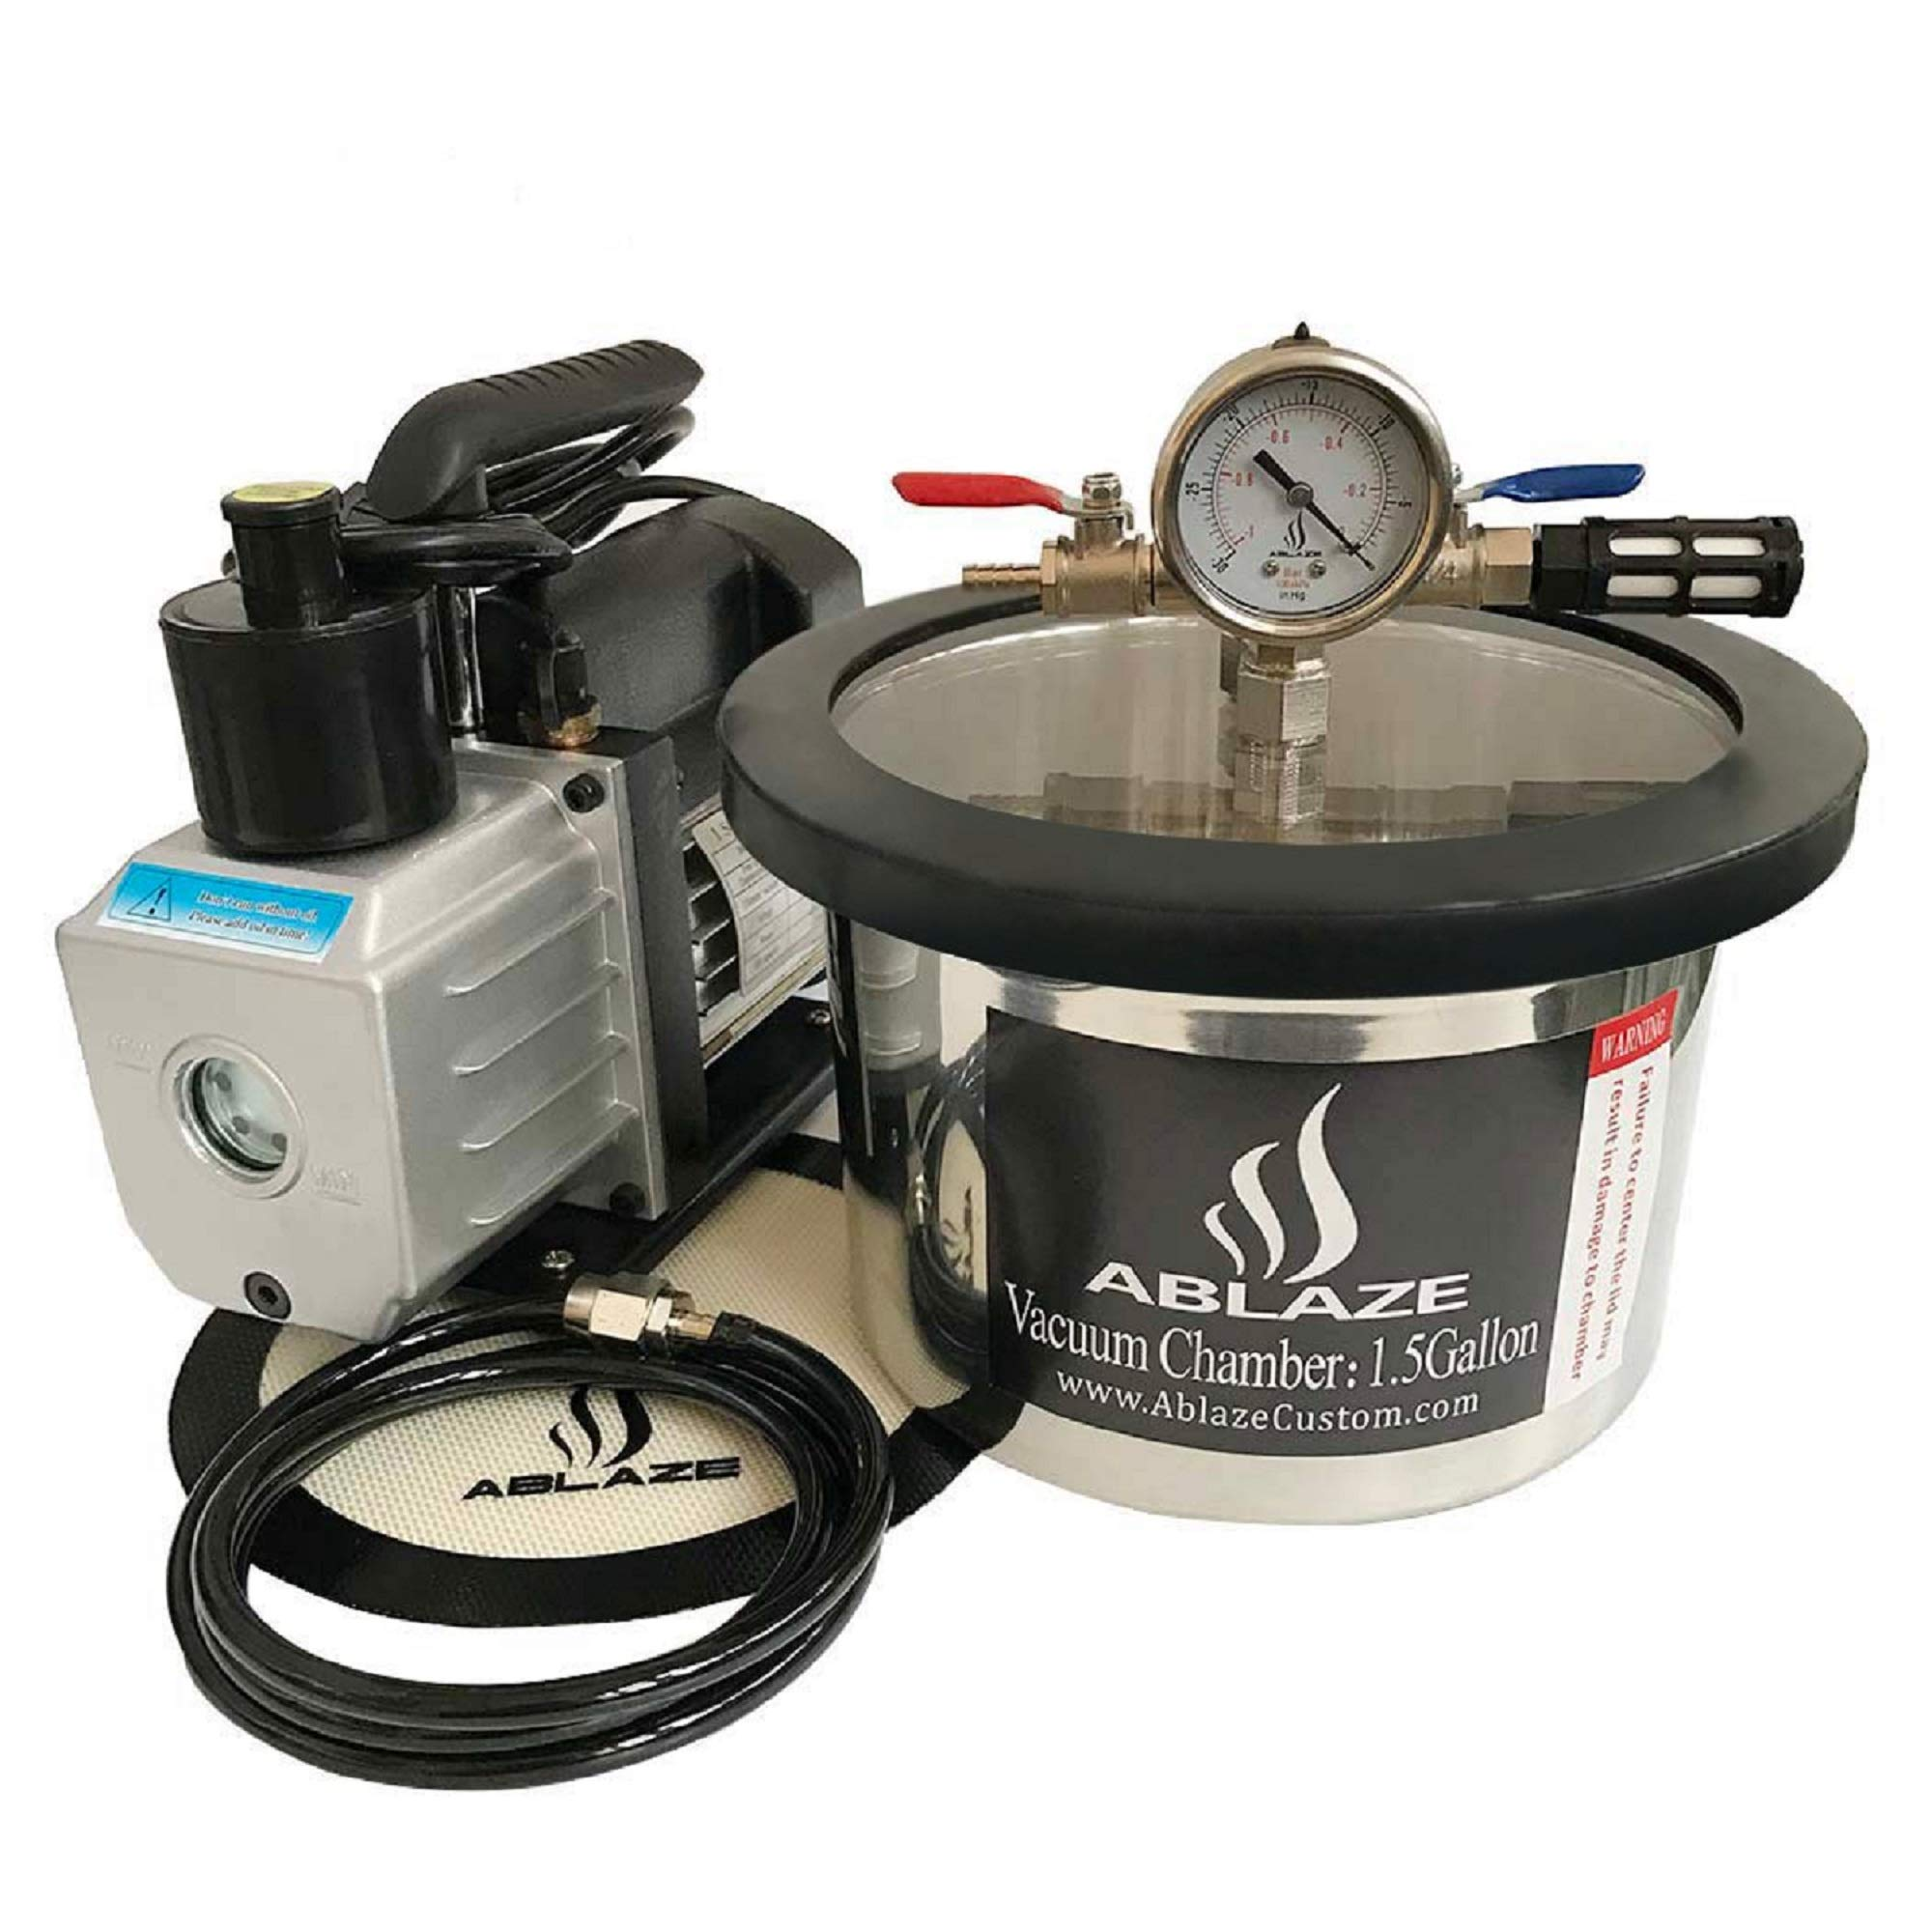 ABLAZE 1.5 Gallon Stainless Steel Vacuum Degassing Chamber and 3 CFM Single Stage Pump Kit by Ablaze (Image #1)